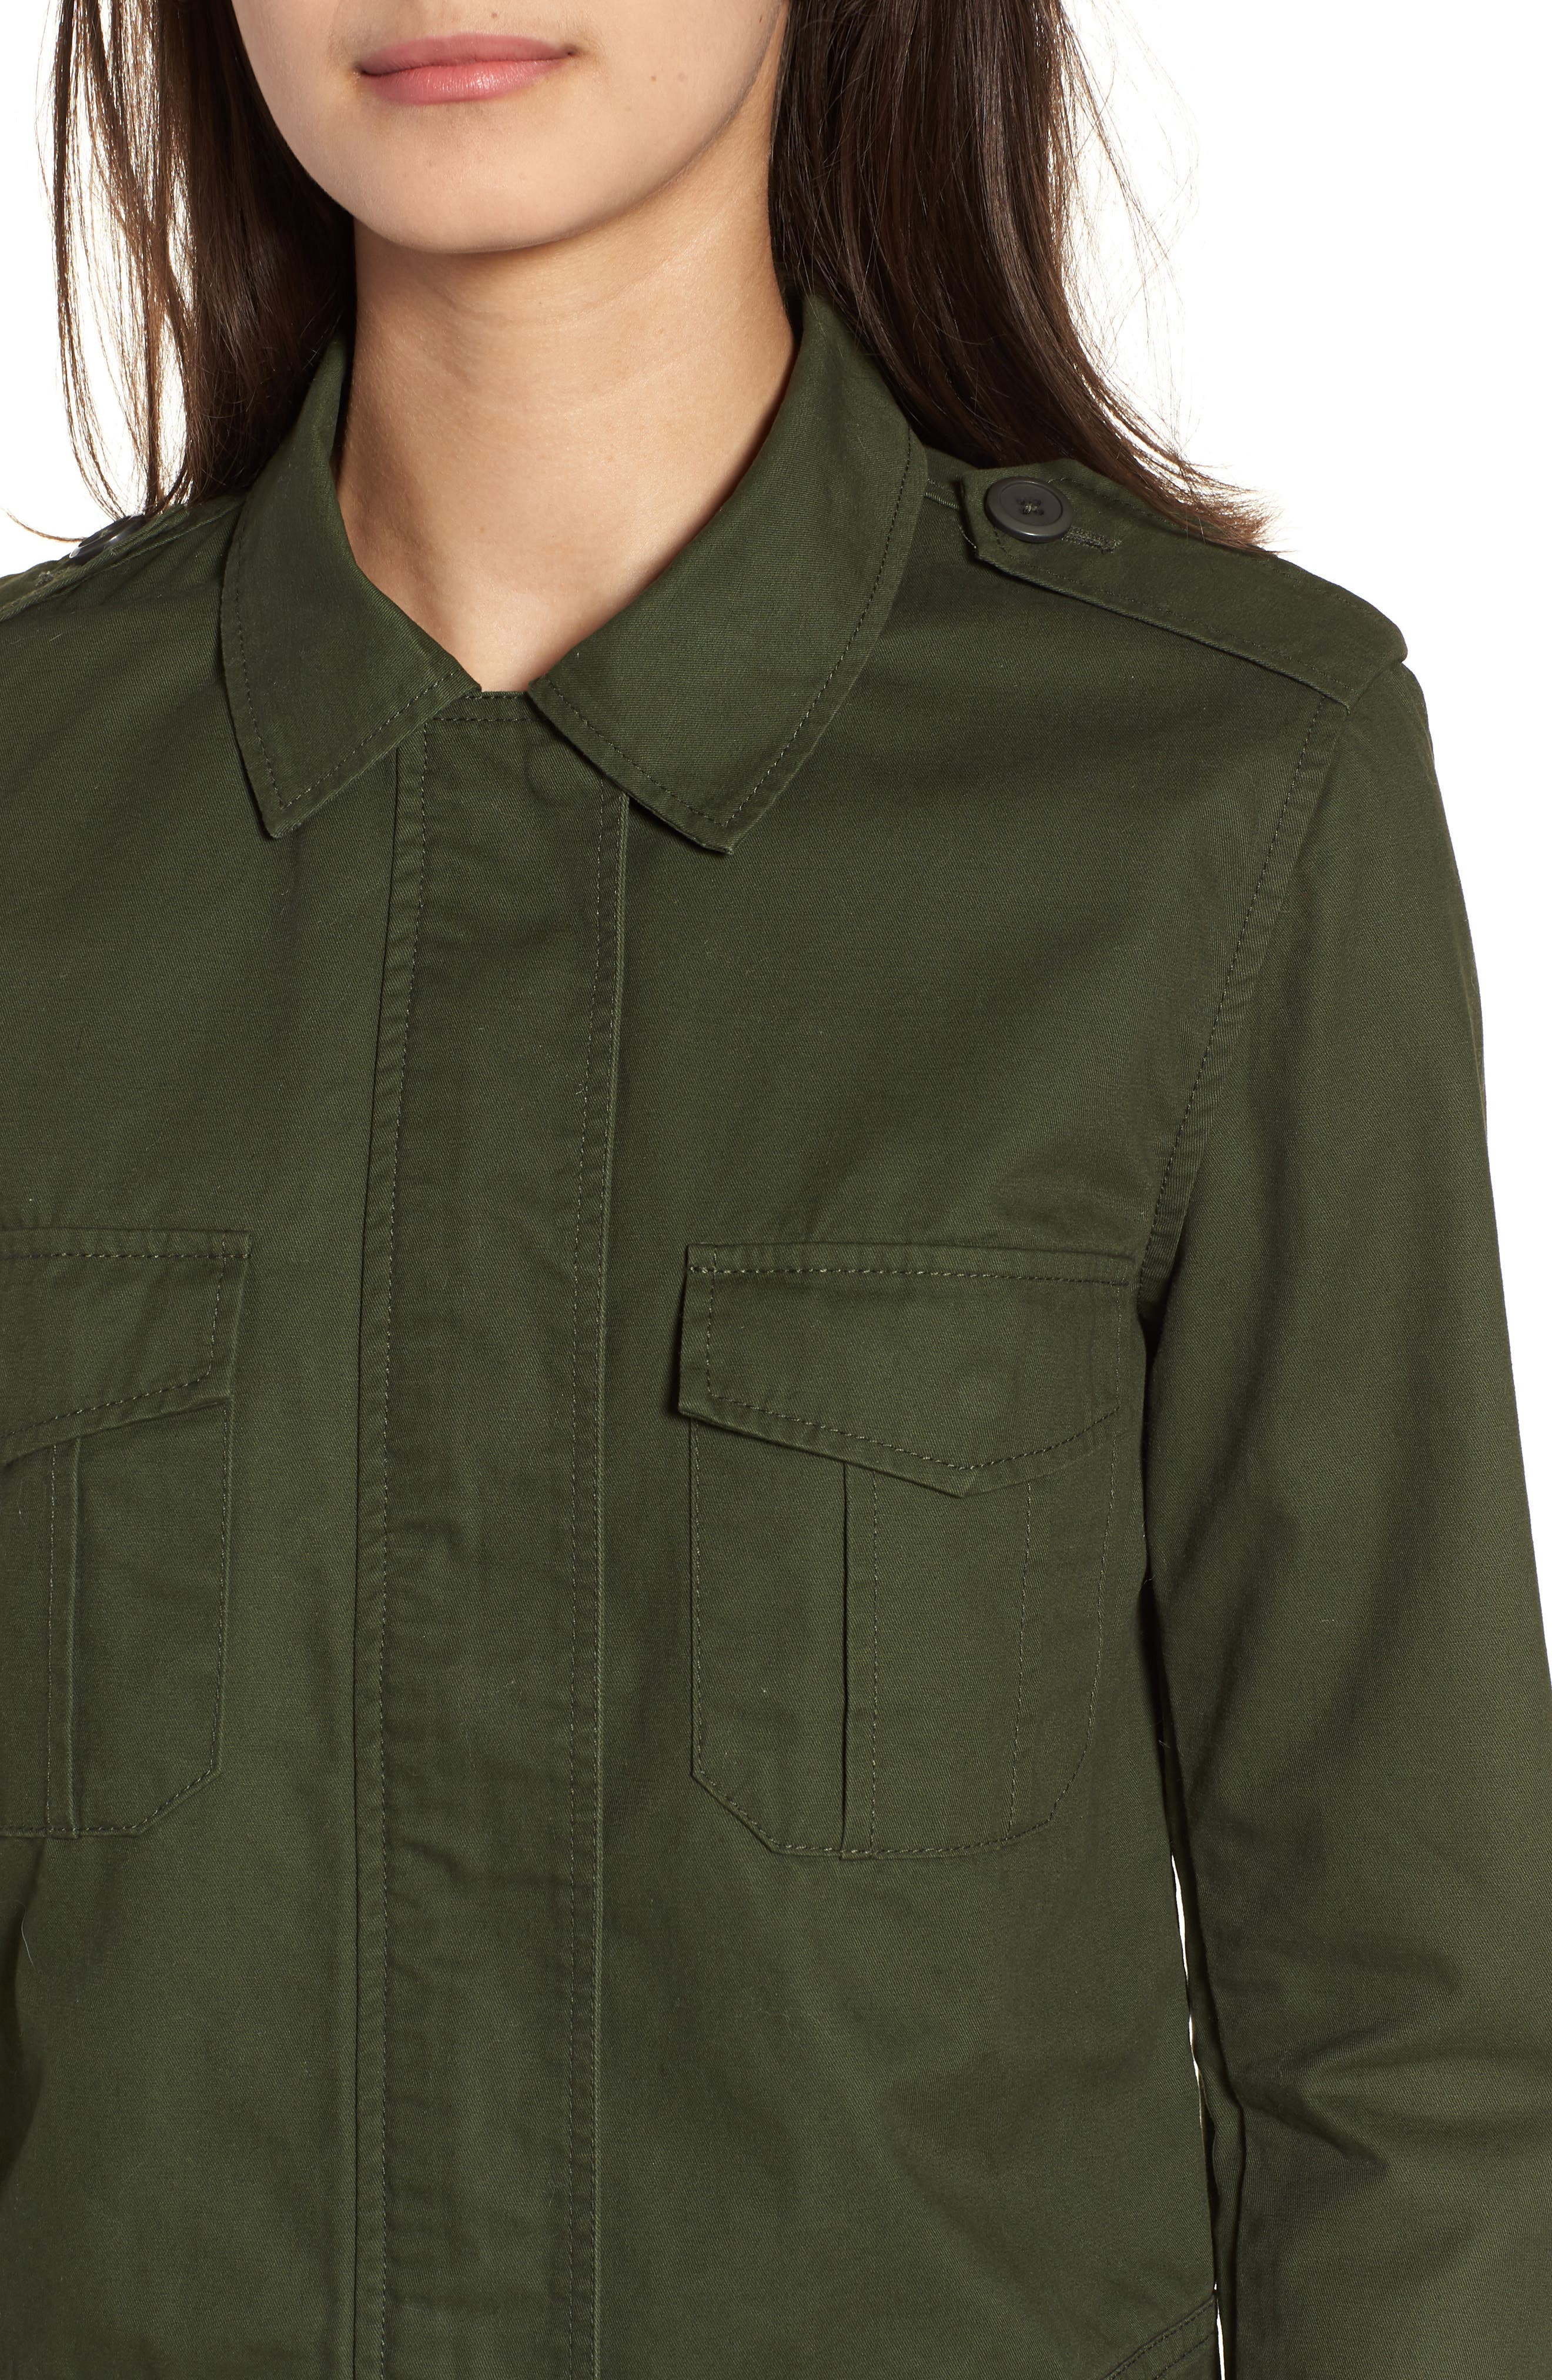 Maddox Cotton Twill Army Jacket,                             Alternate thumbnail 4, color,                             301